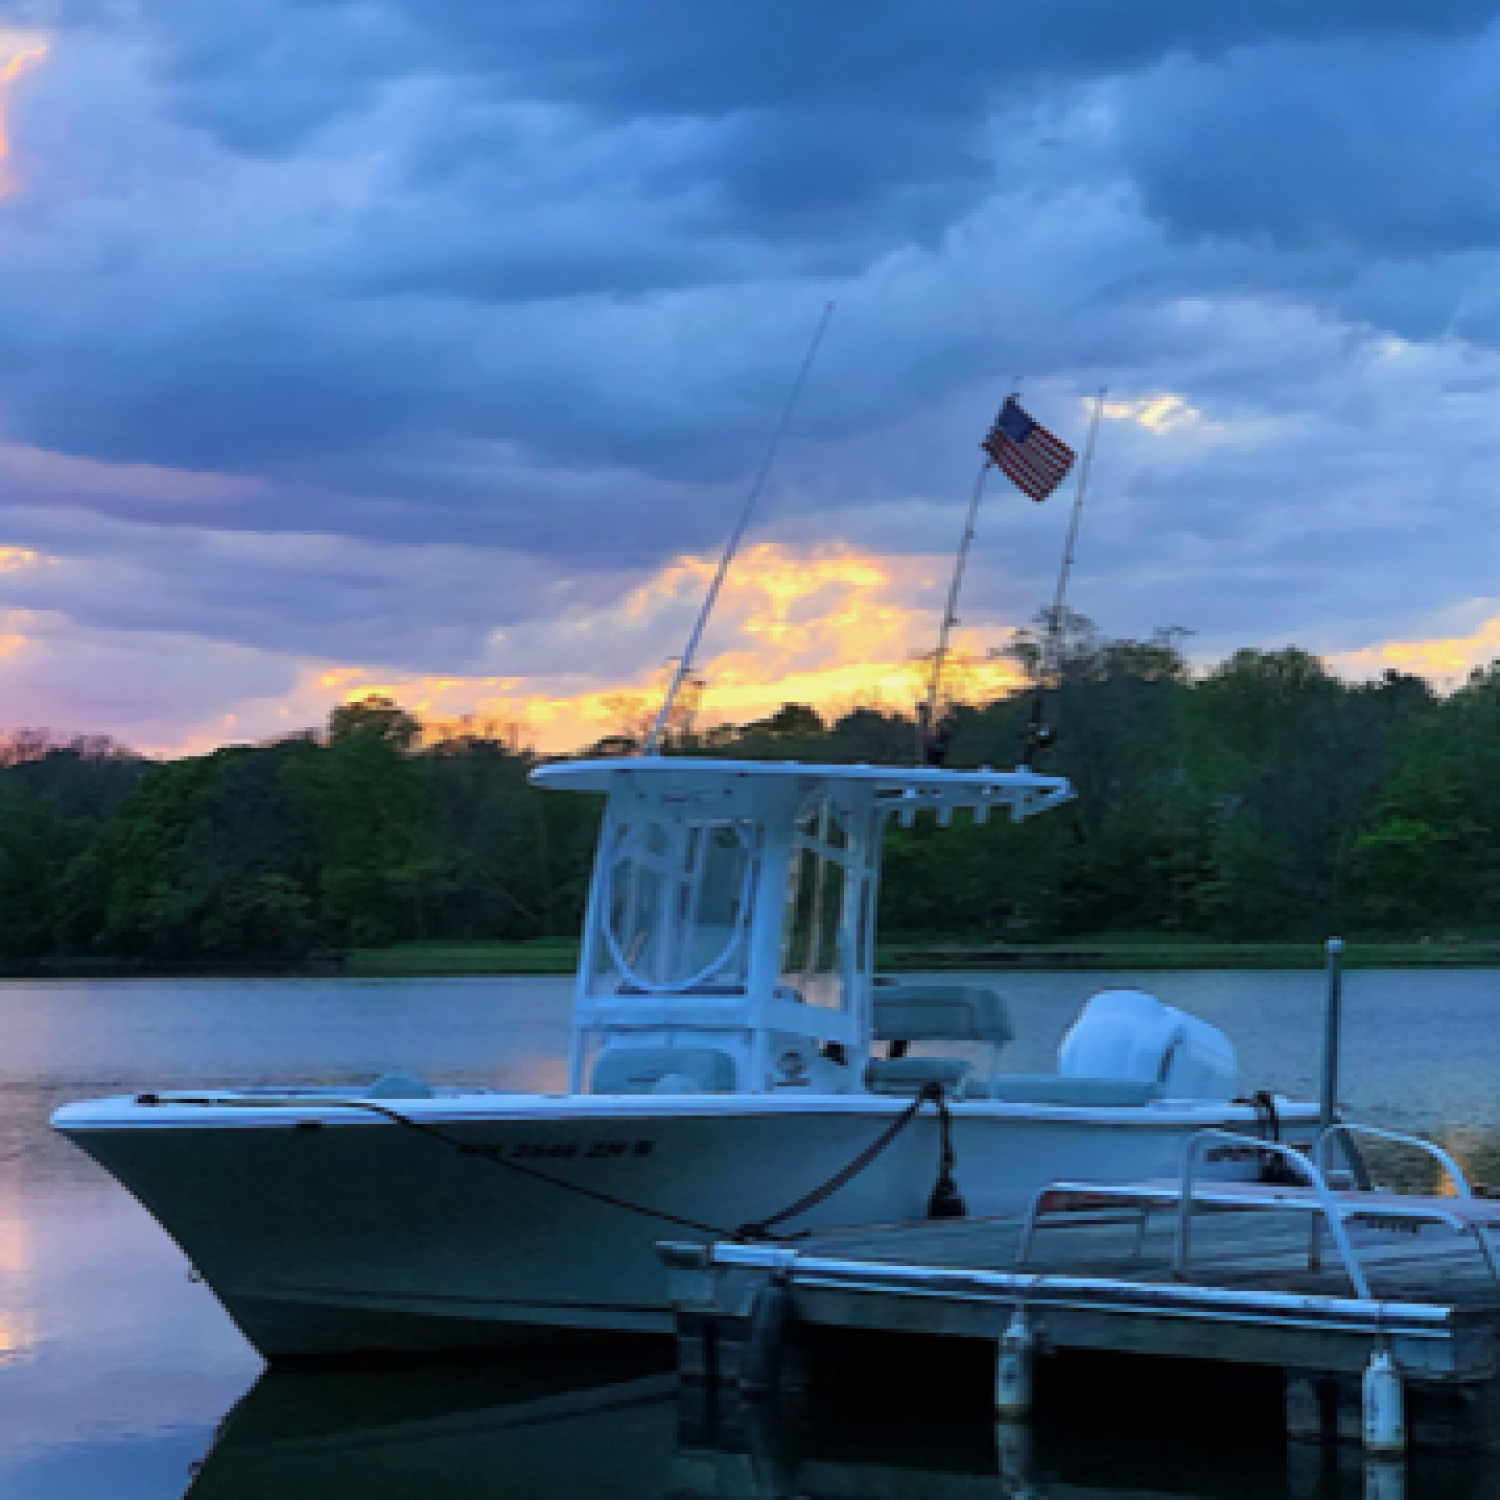 Title: Sunset back at the dock. - On board their Sportsman Open 232 Center Console - Location: Gloucester MA. Participating in the Photo Contest #SportsmanJuly2019